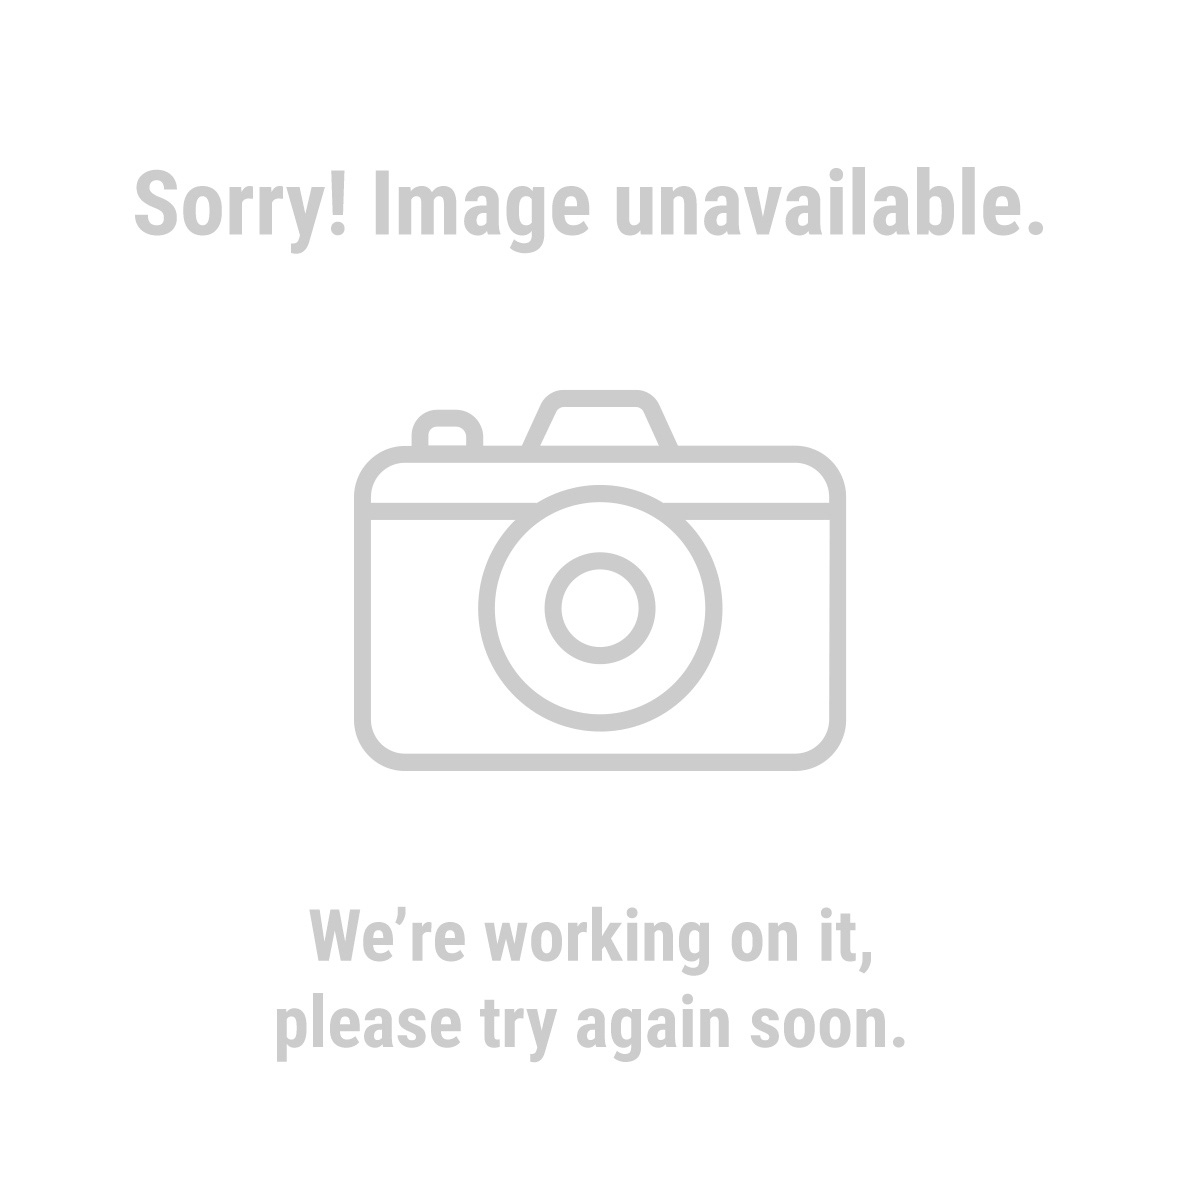 Pacific Hydrostar® 61990 6.5 HP 212cc 3 in. Gas Engine Full Trash Pump 264 GPM